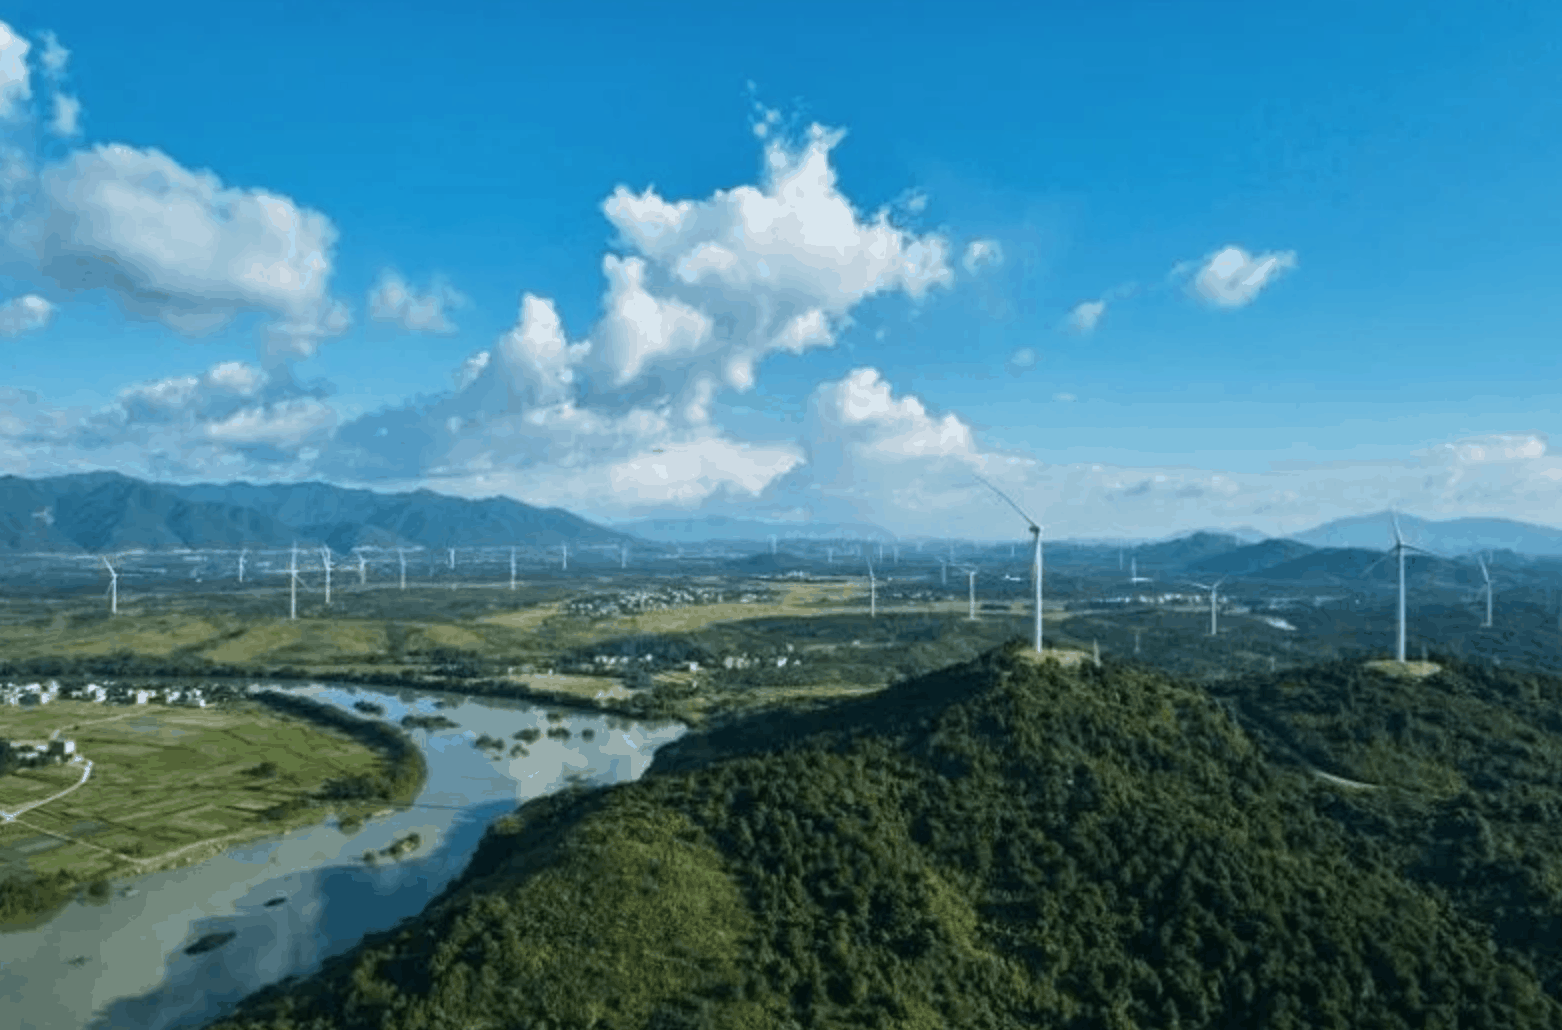 Apple Bags China's Outstanding Brand Award for Environmental Focus